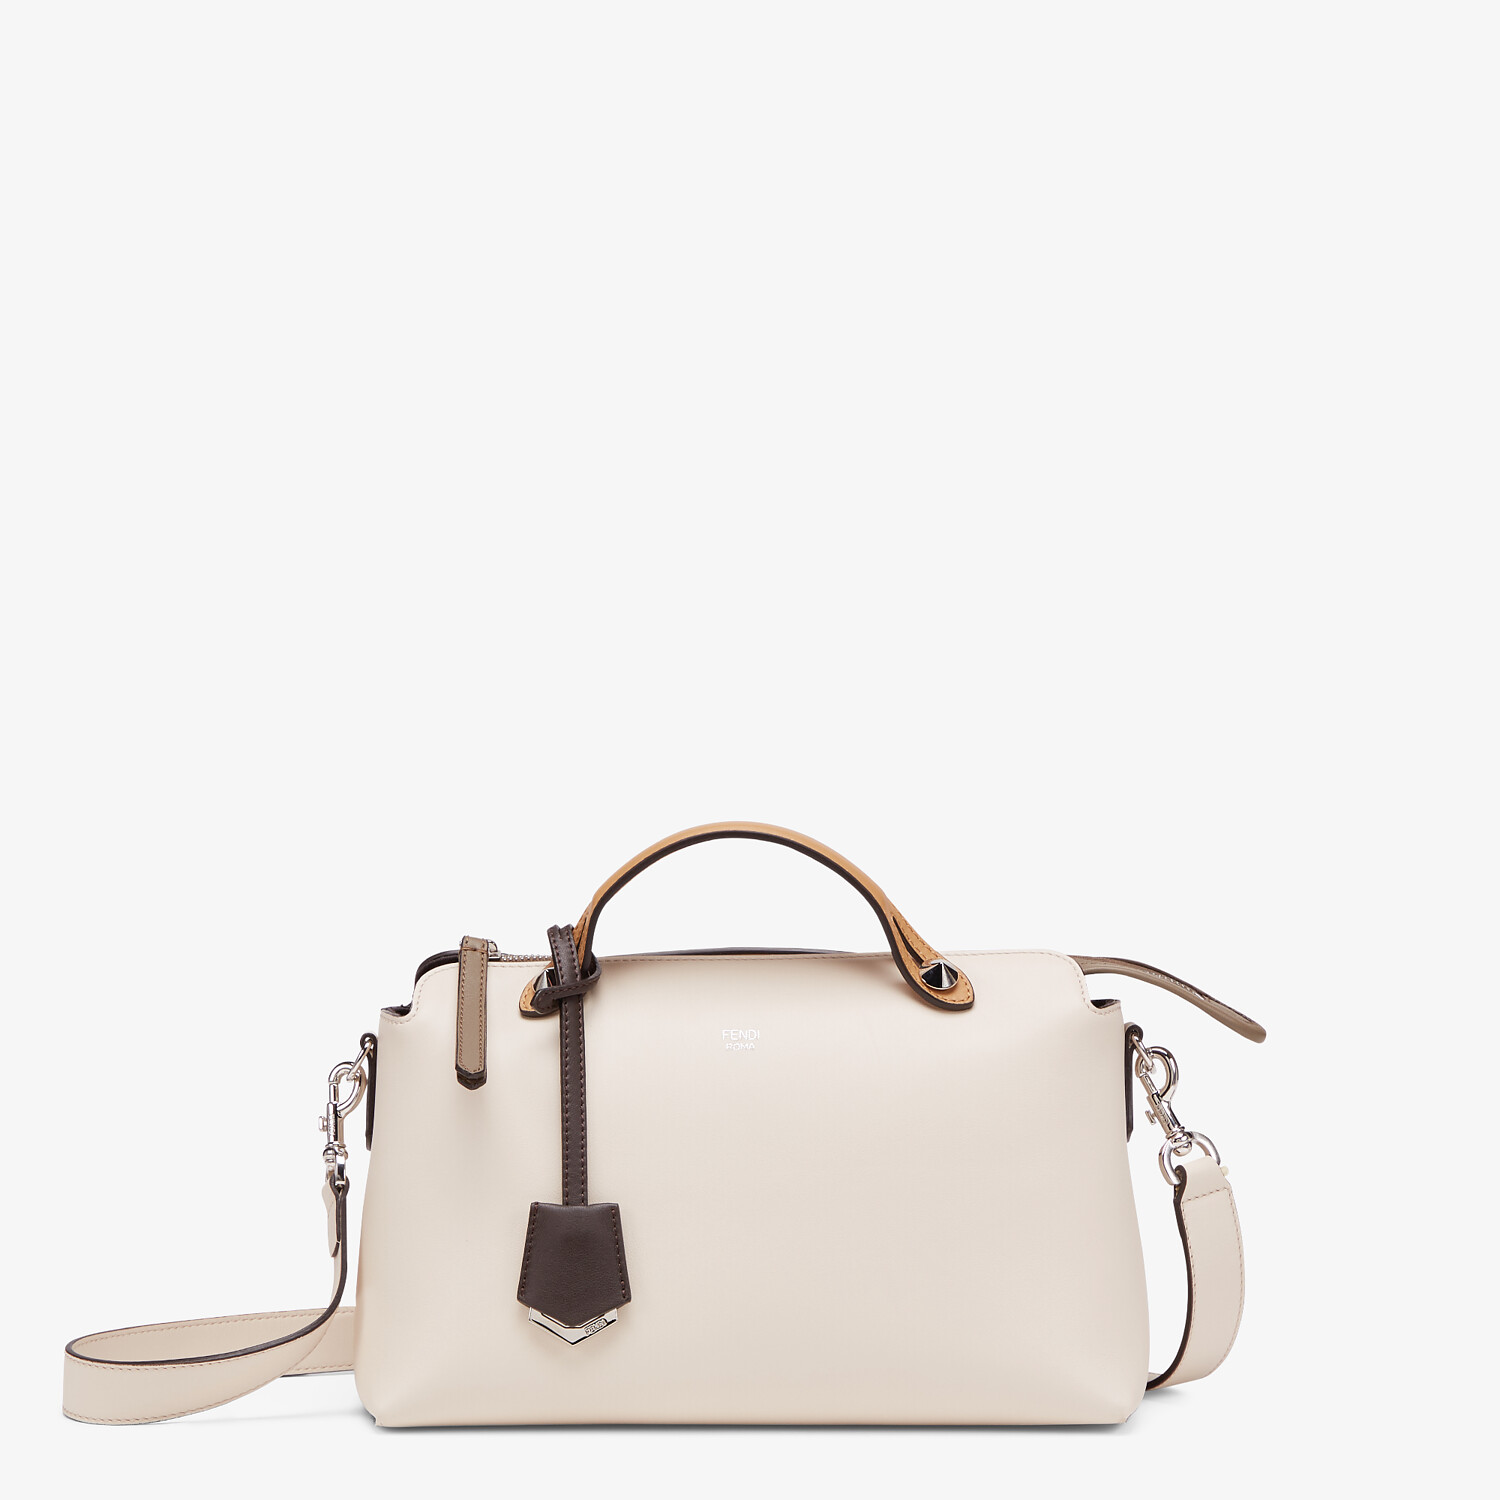 FENDI BY THE WAY MEDIUM - Multicolor leather Boston bag - view 1 detail